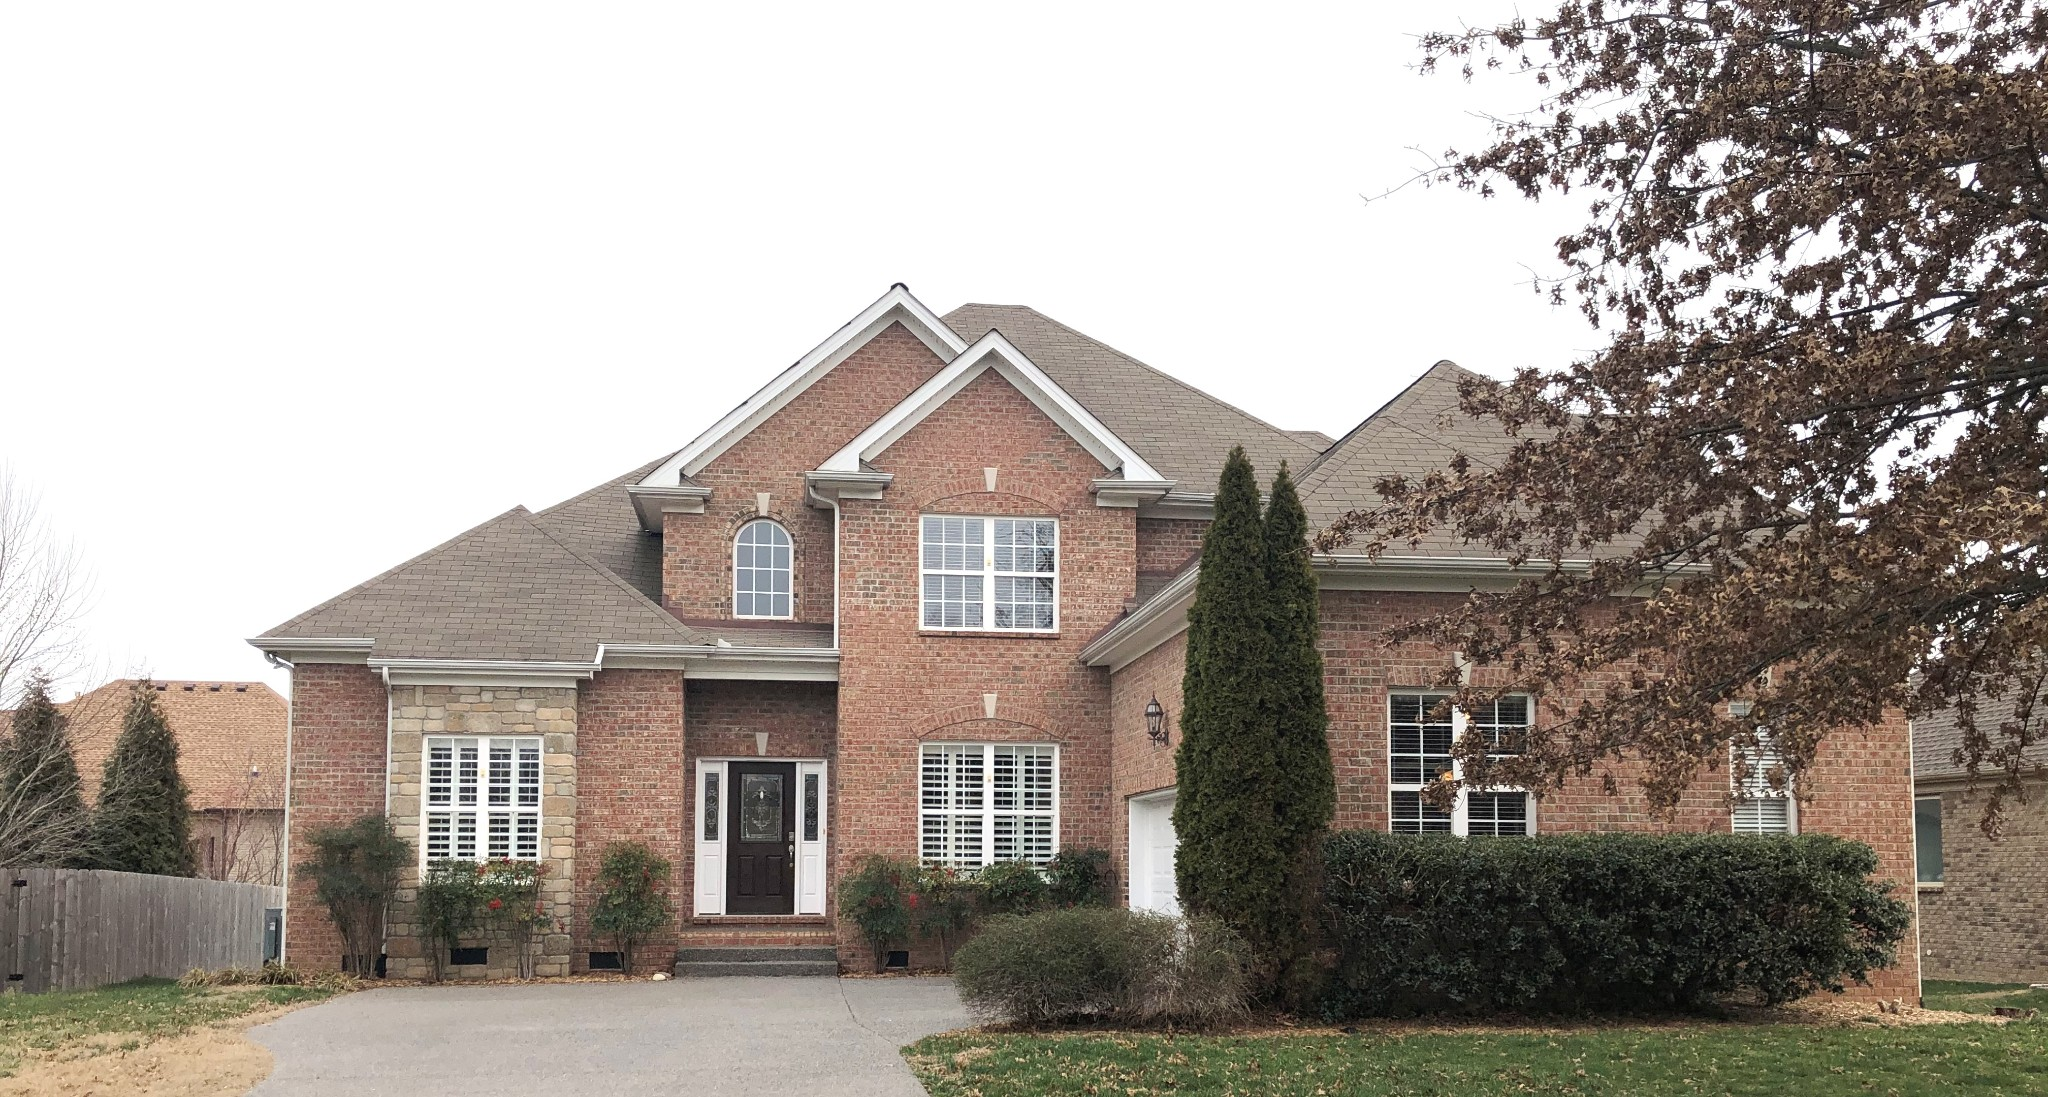 1021 Brixworth Dr, Spring Hill, TN 37174 - Spring Hill, TN real estate listing